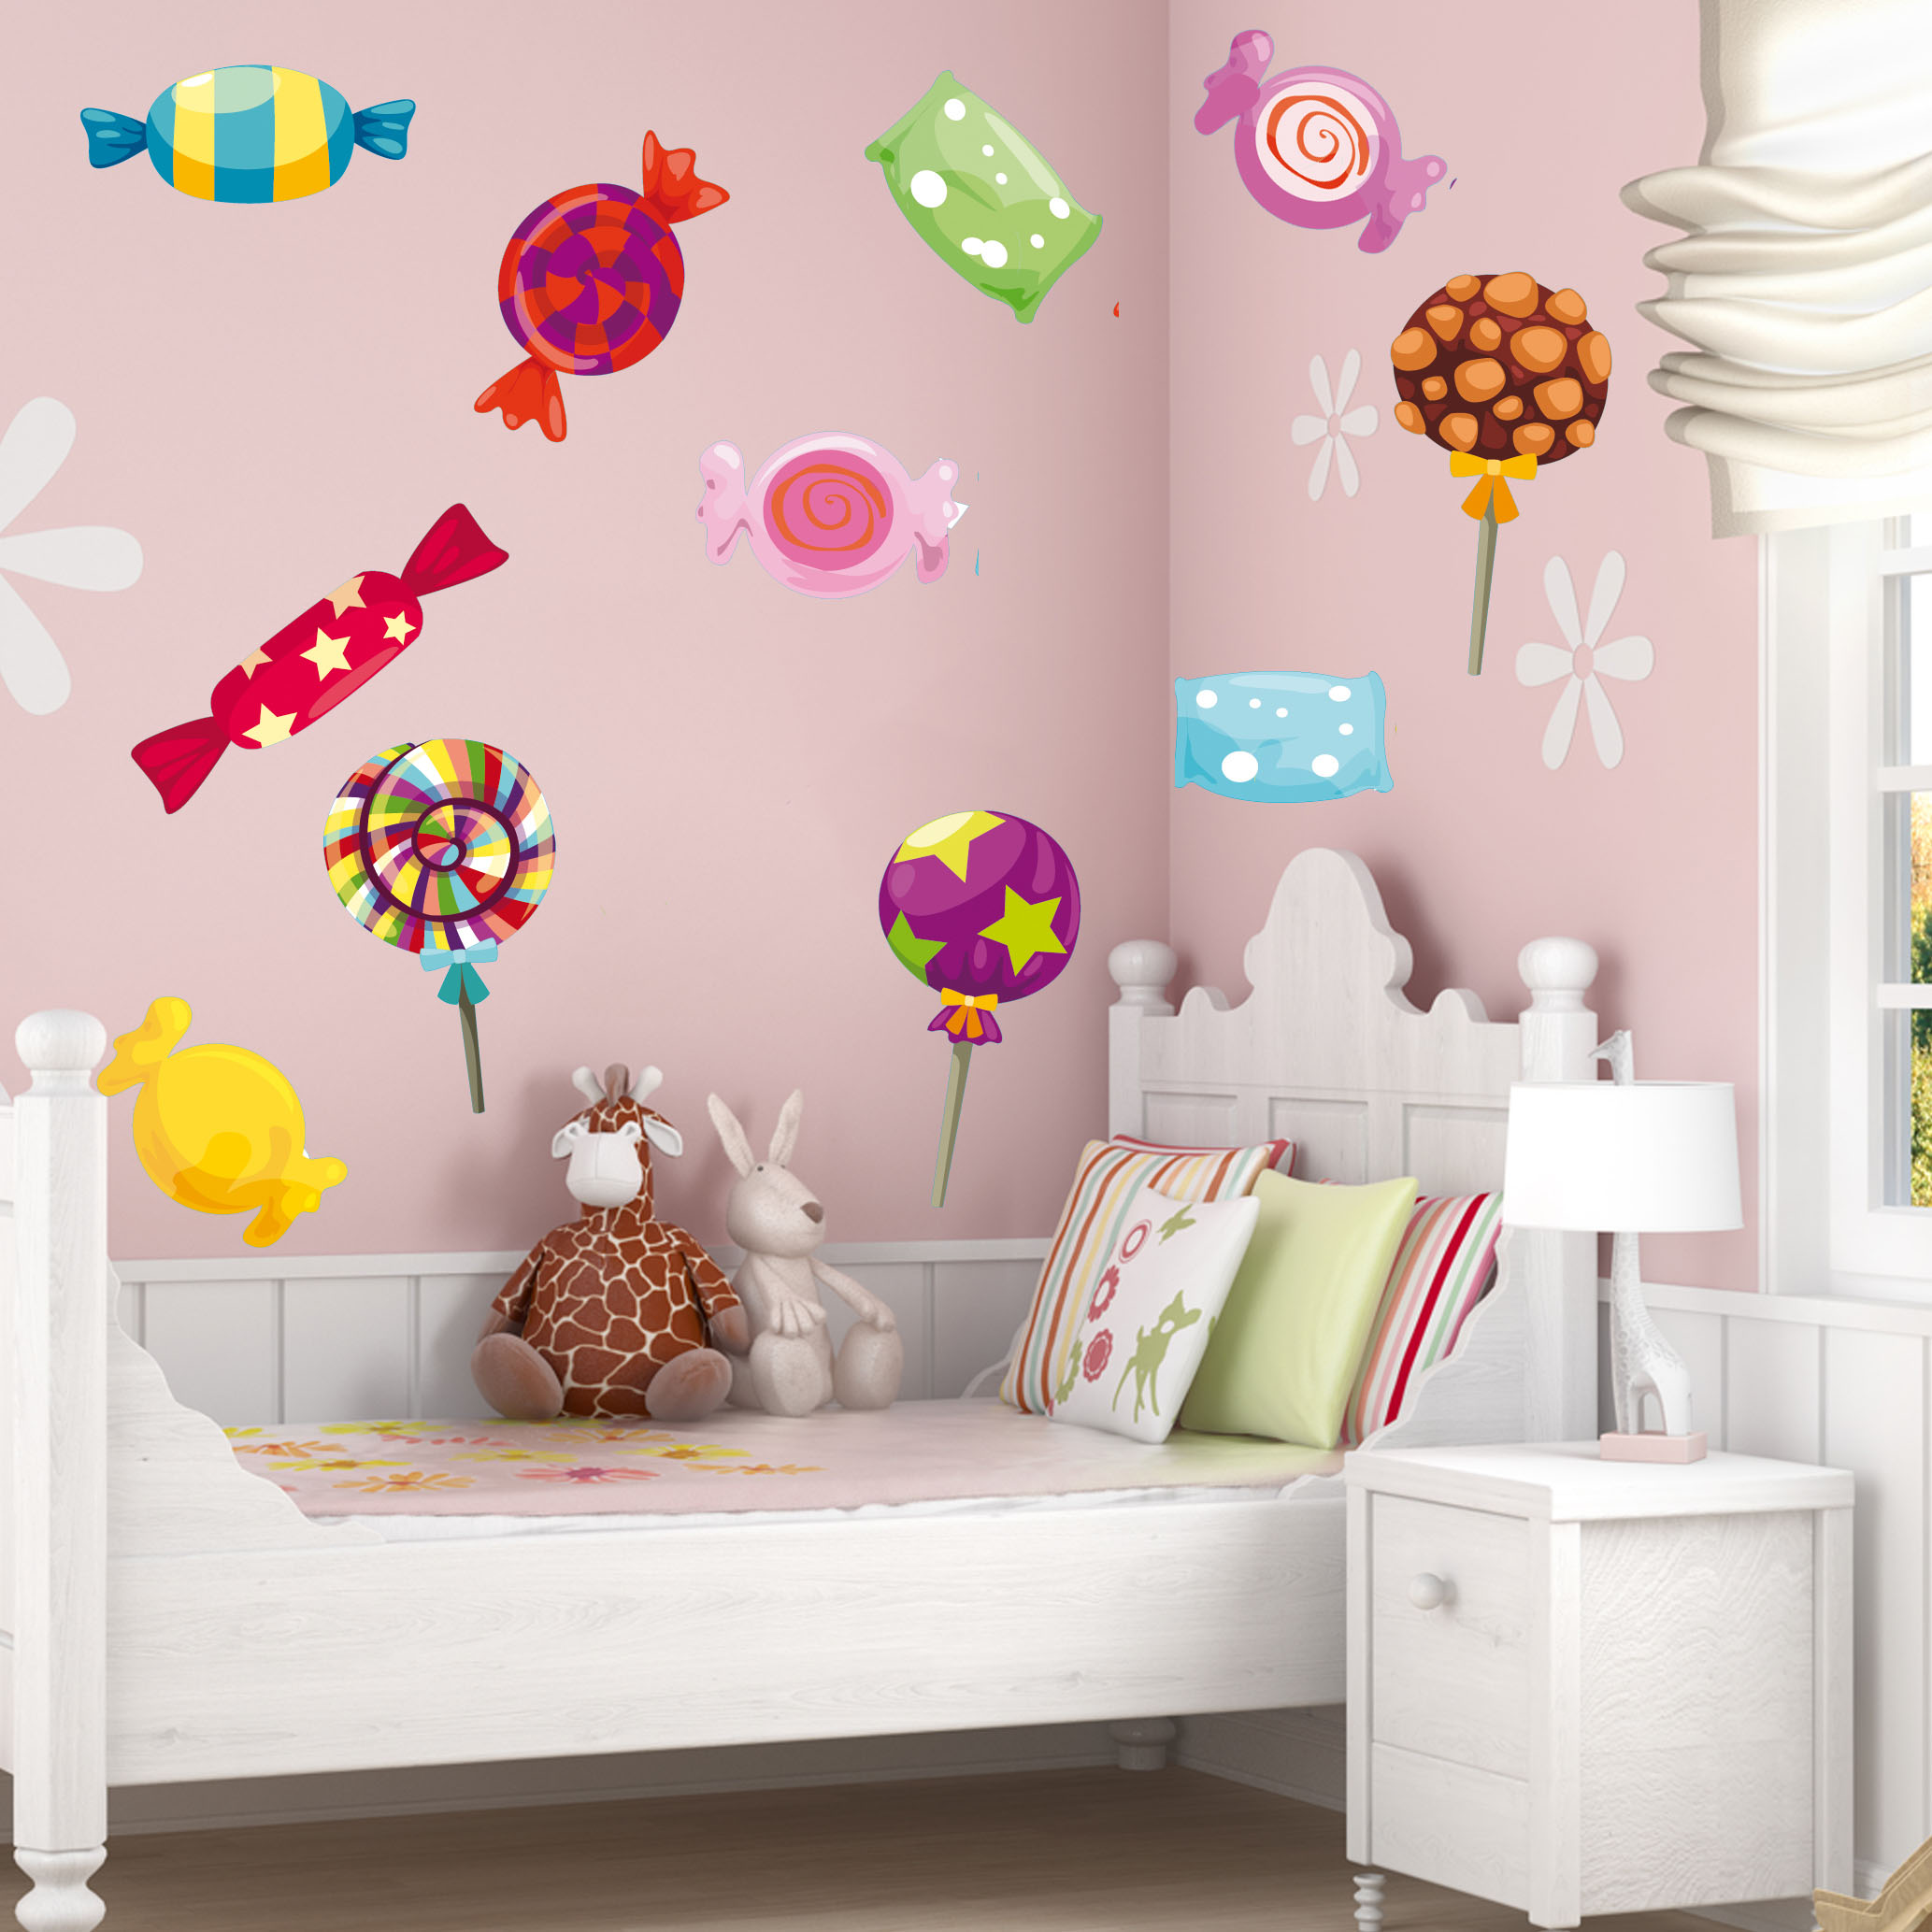 stickers 15 bonbons pas cher. Black Bedroom Furniture Sets. Home Design Ideas